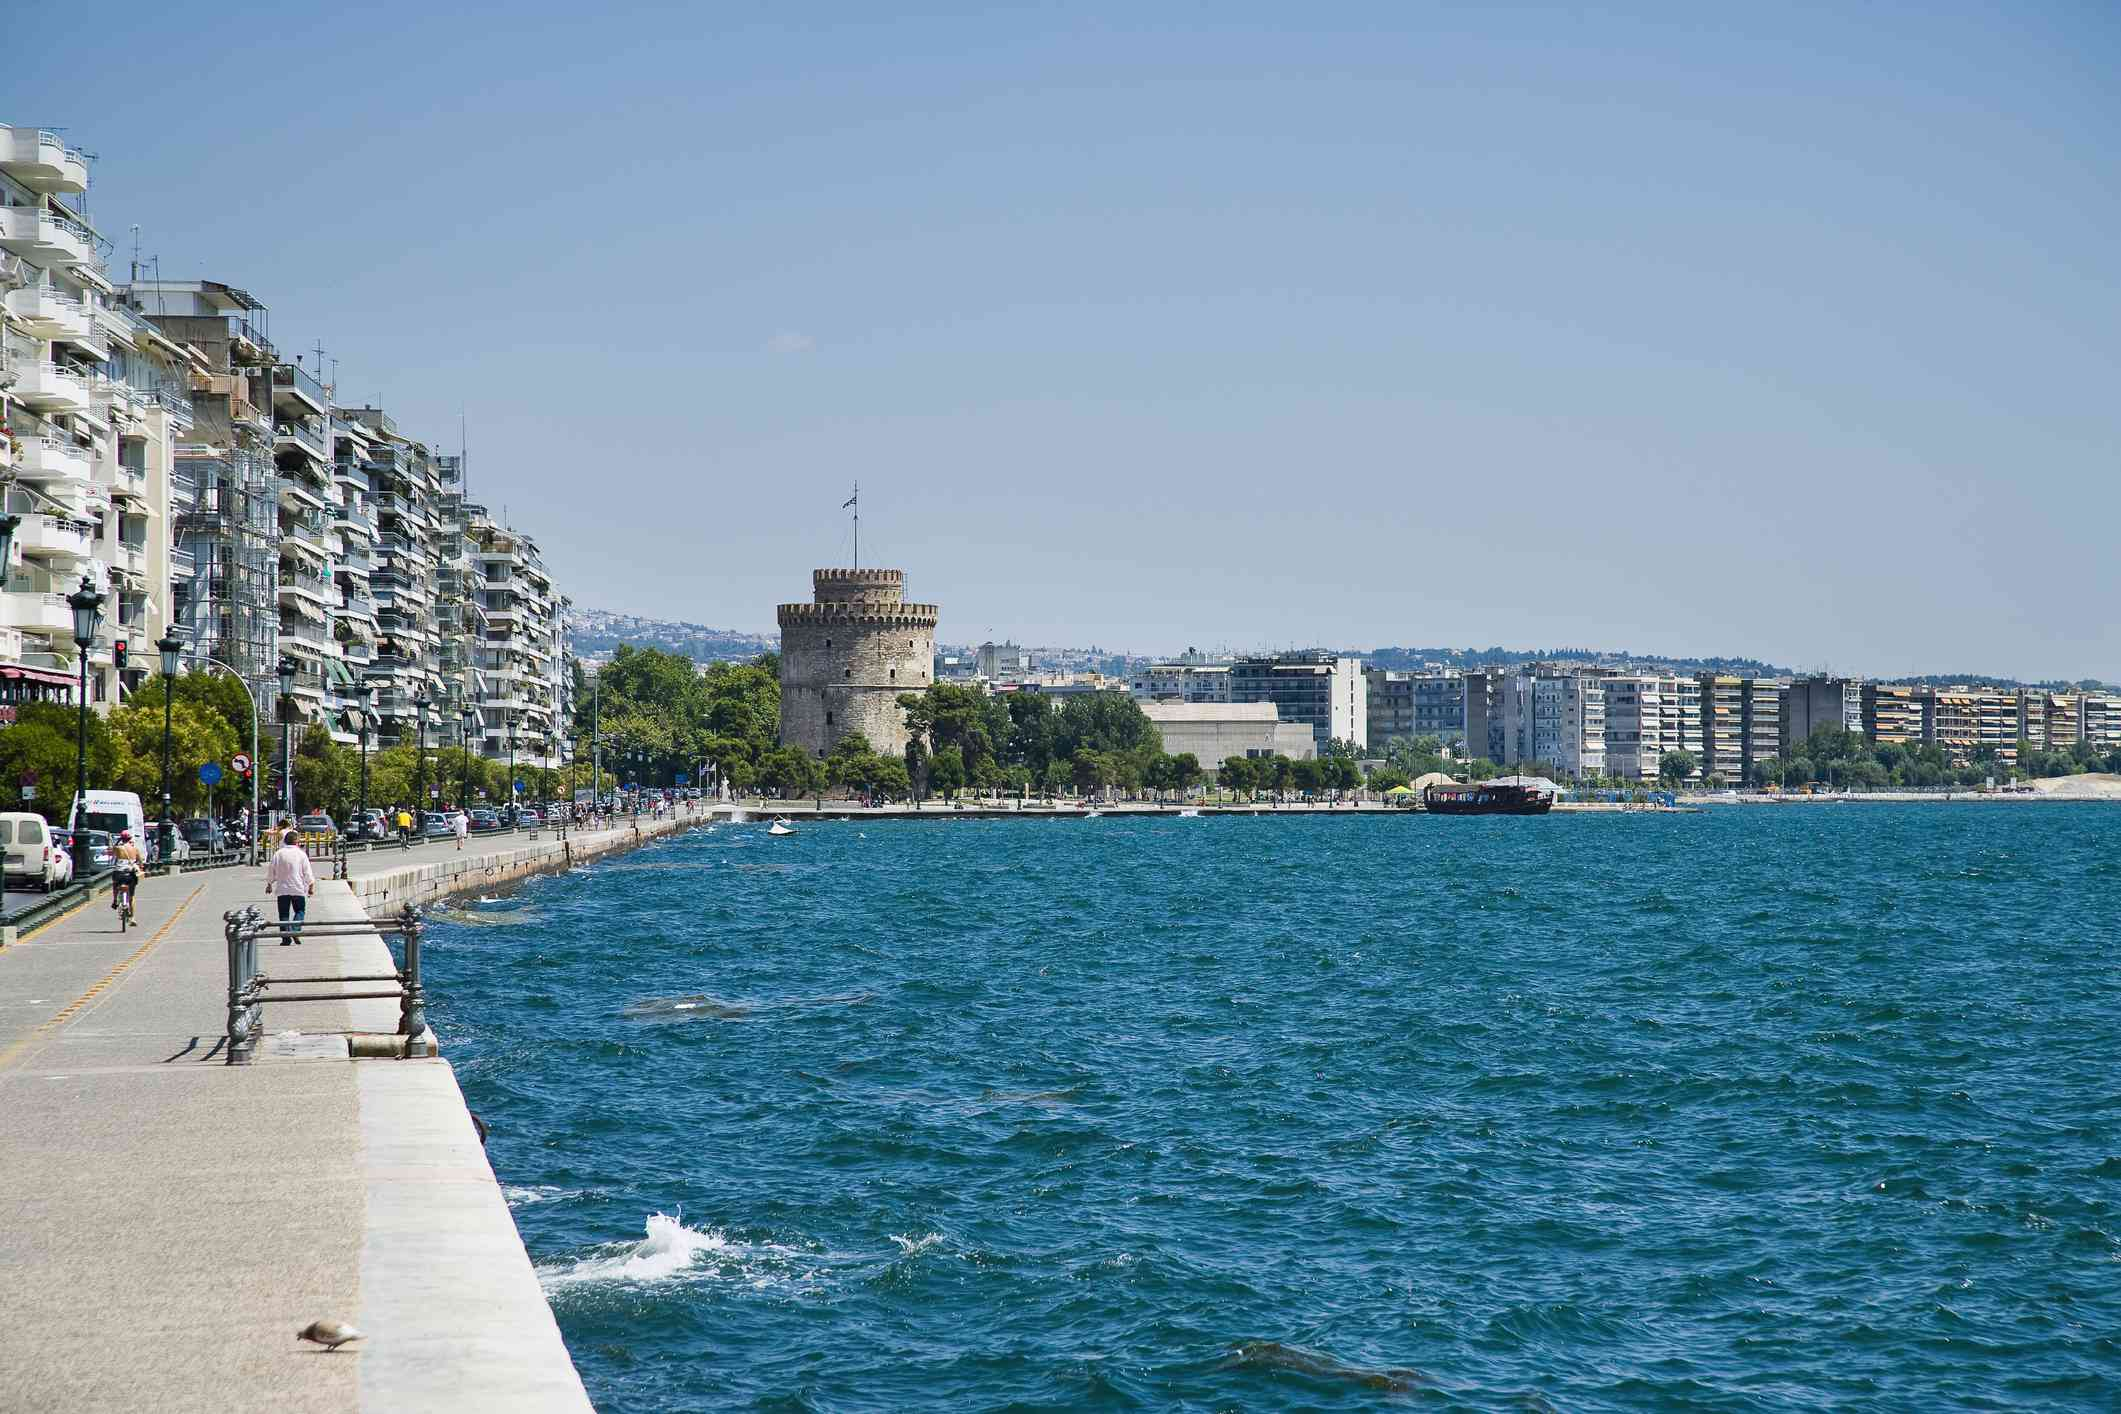 Greece, View of waterfront with White Tower in background; Thessaloniki